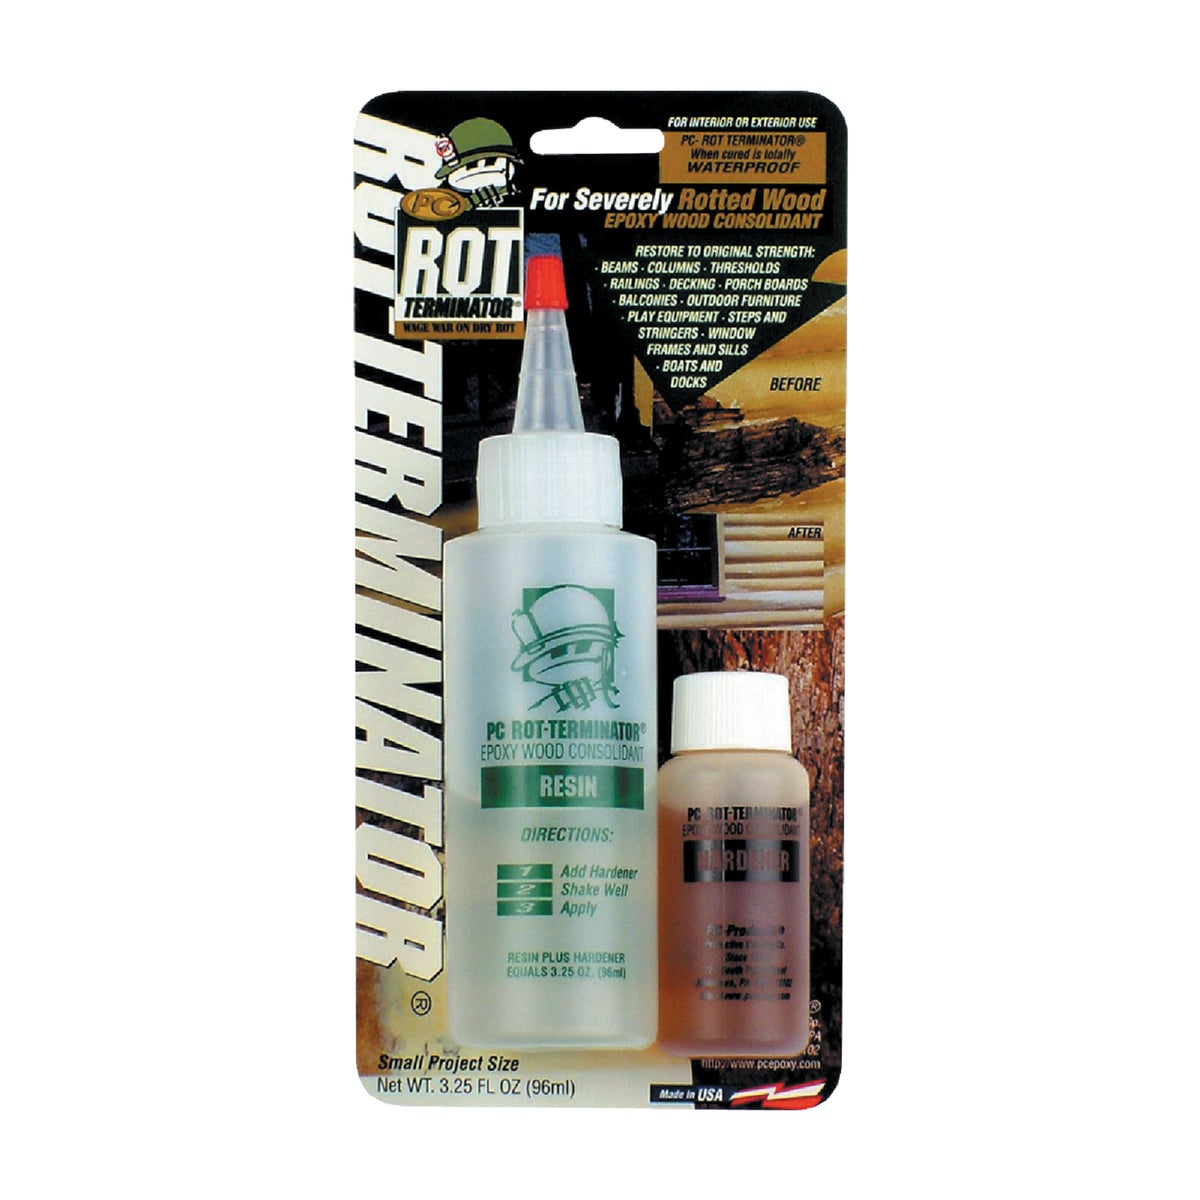 3.25OZ PC-ROT TERMINATOR - 35061 by Protective Coating